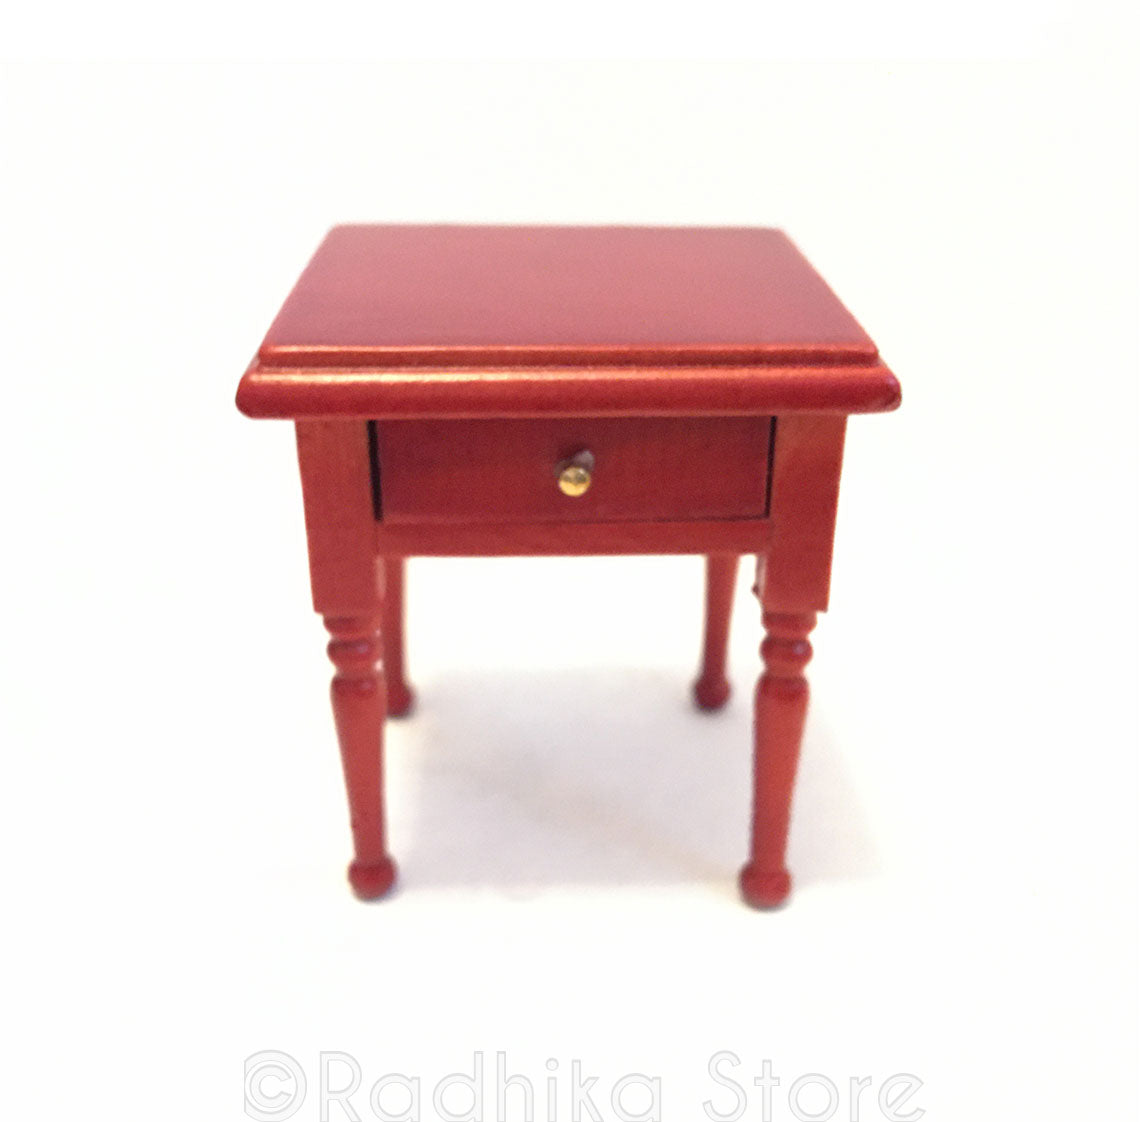 Chawki (Offering Table) Or Side Table With Drawer- Cherry Finish